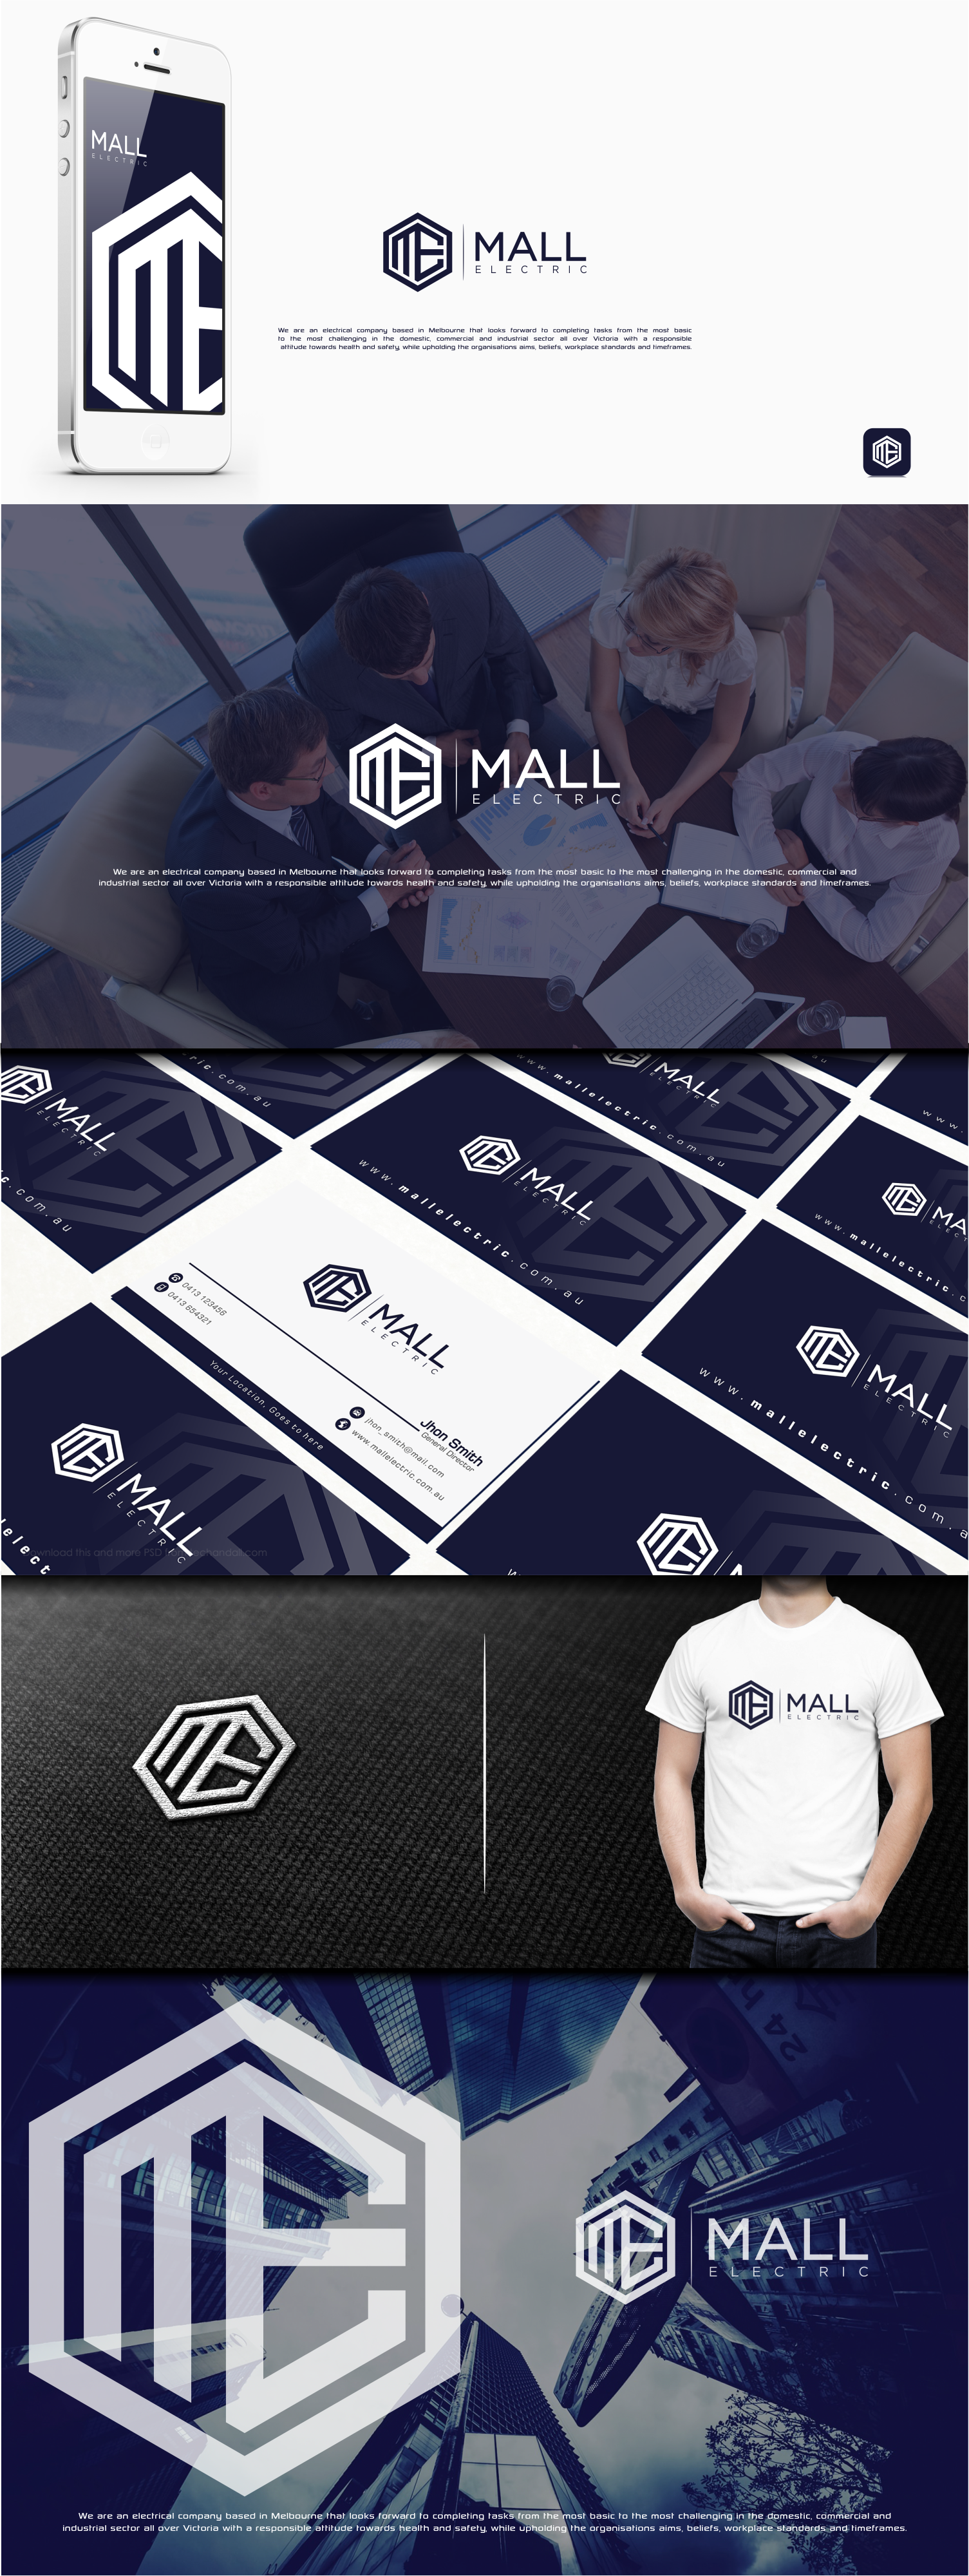 Create an exciting logo and brand identity for our business.